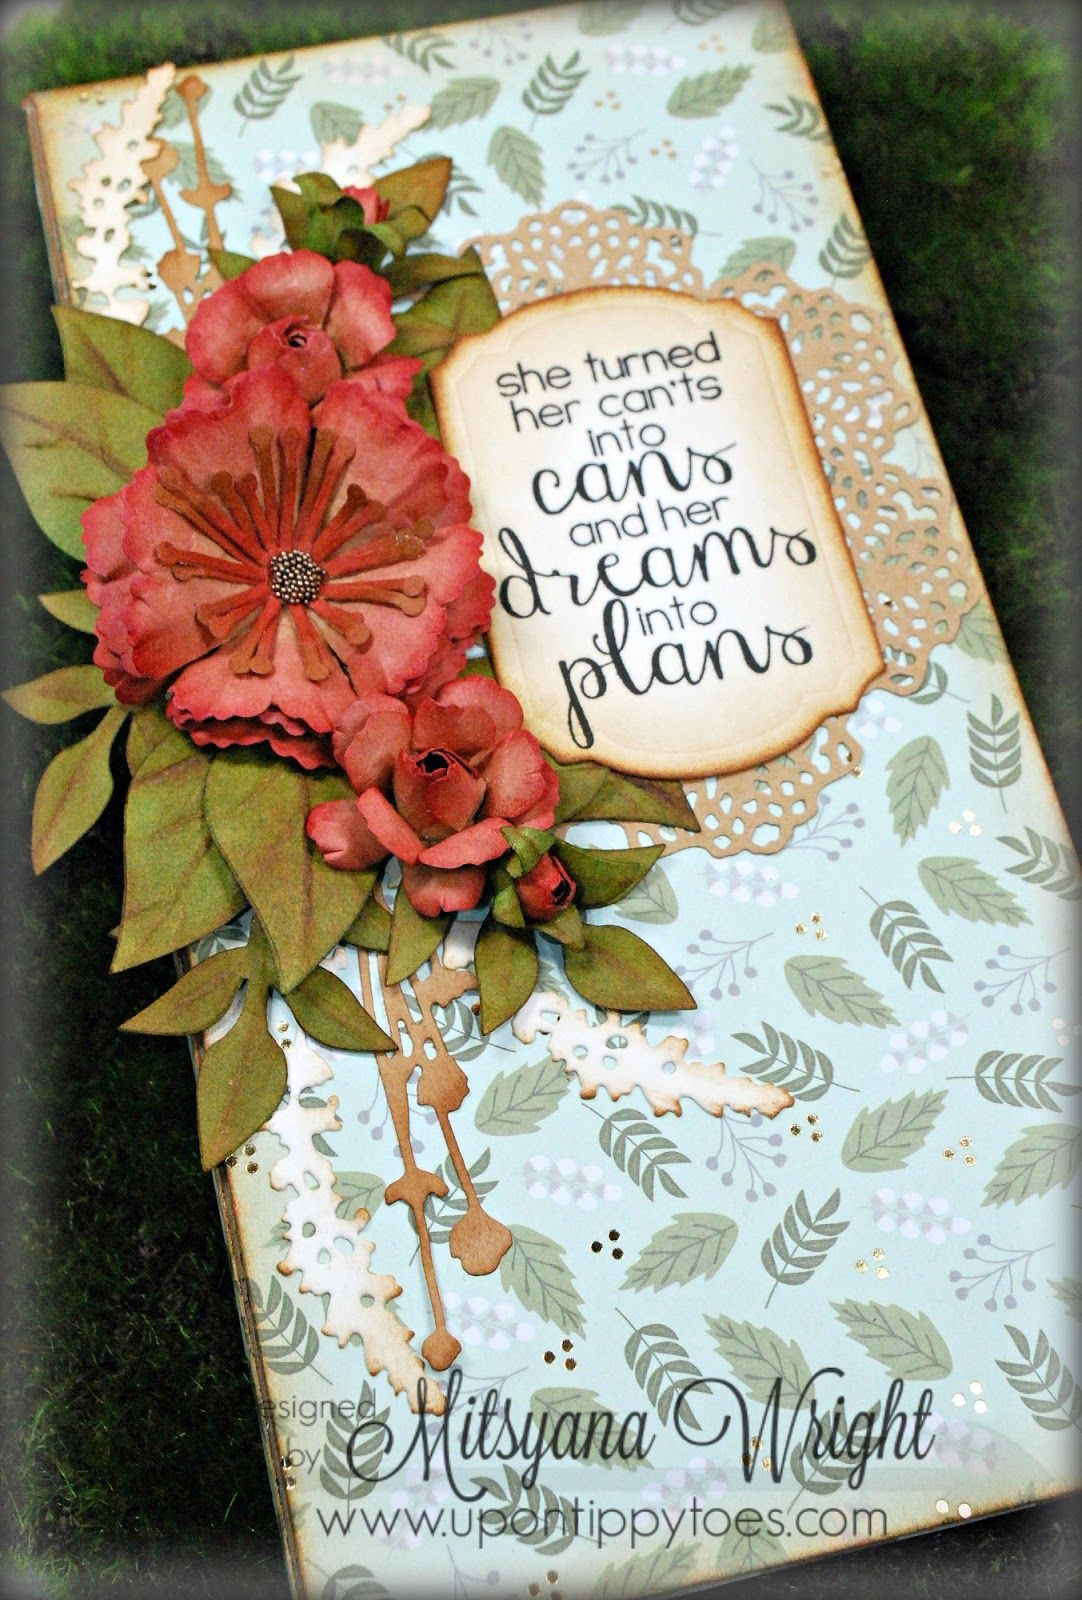 Journal w/ Kraft Cardstock Flowers